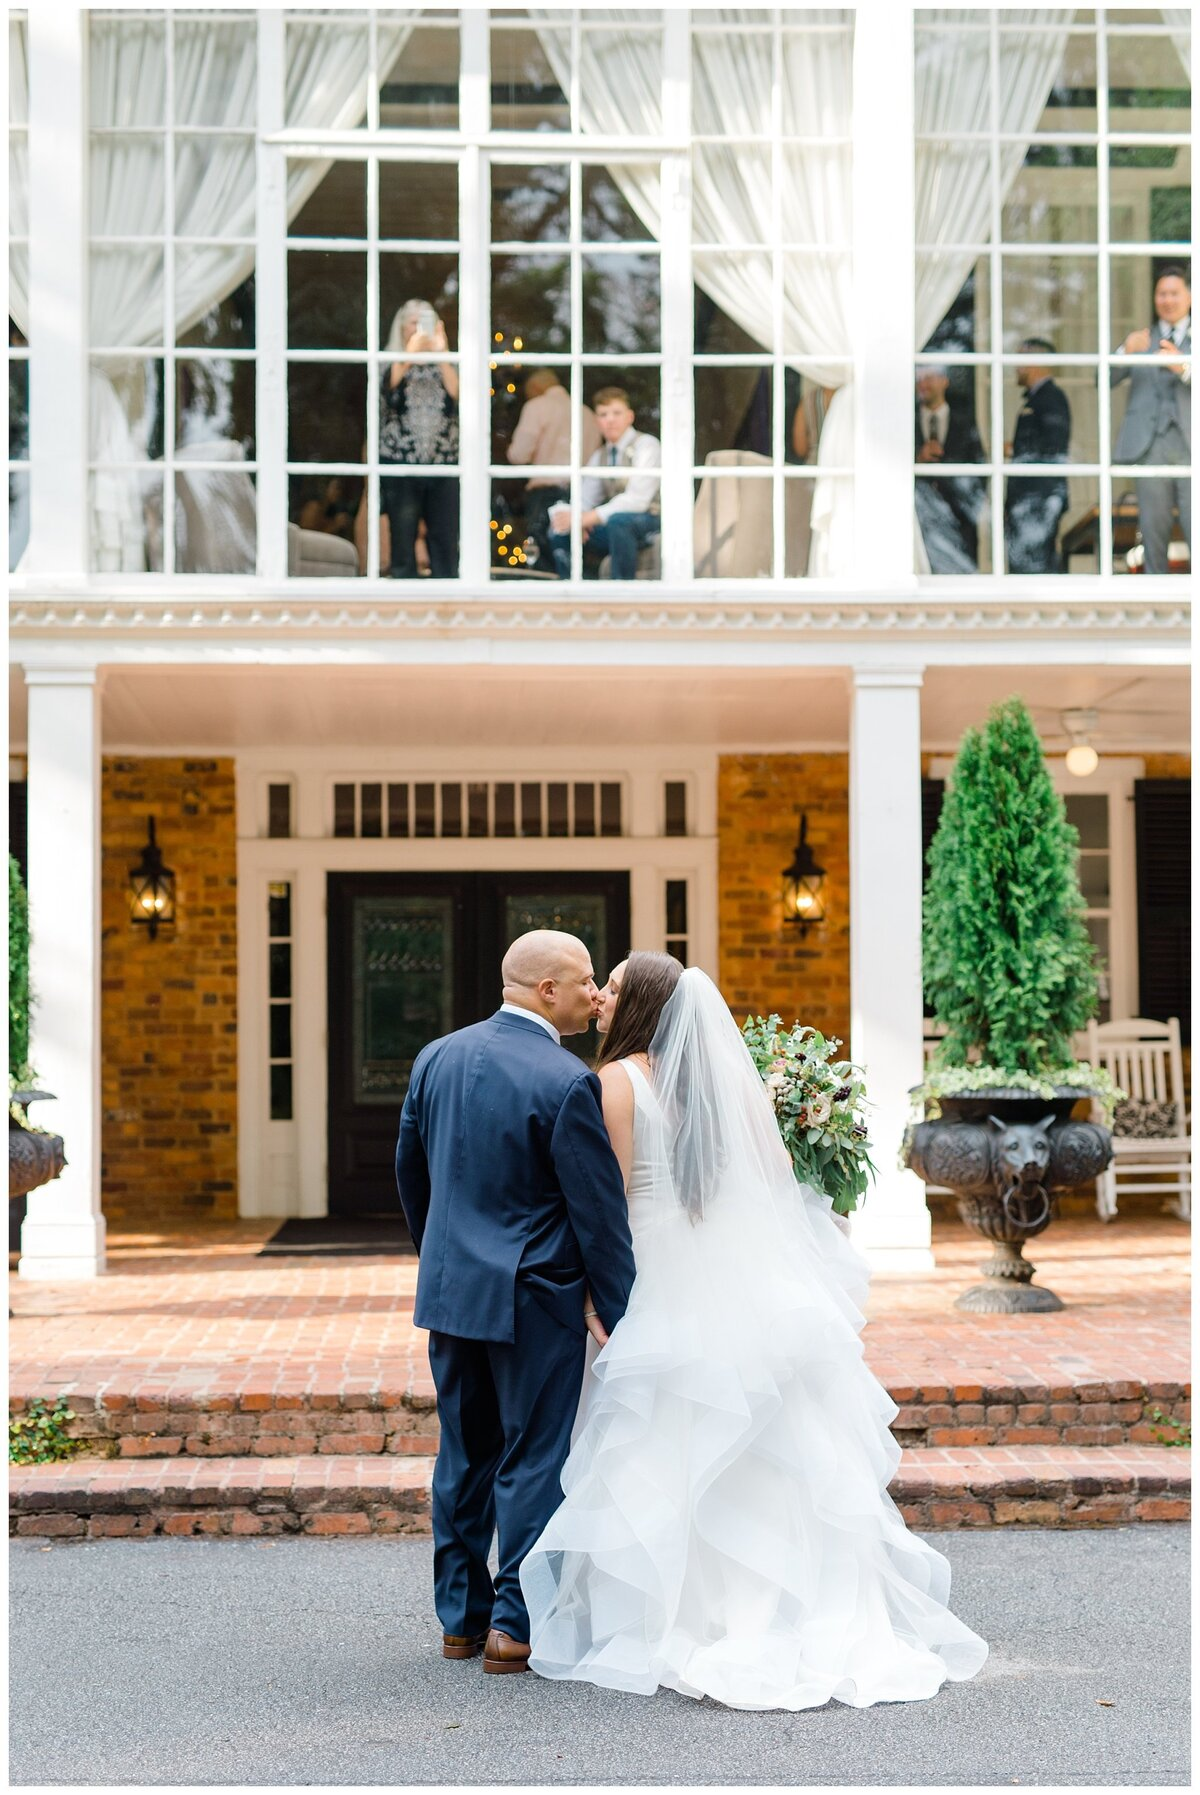 harkins-wedding-atlanta-georgia-photographer-57